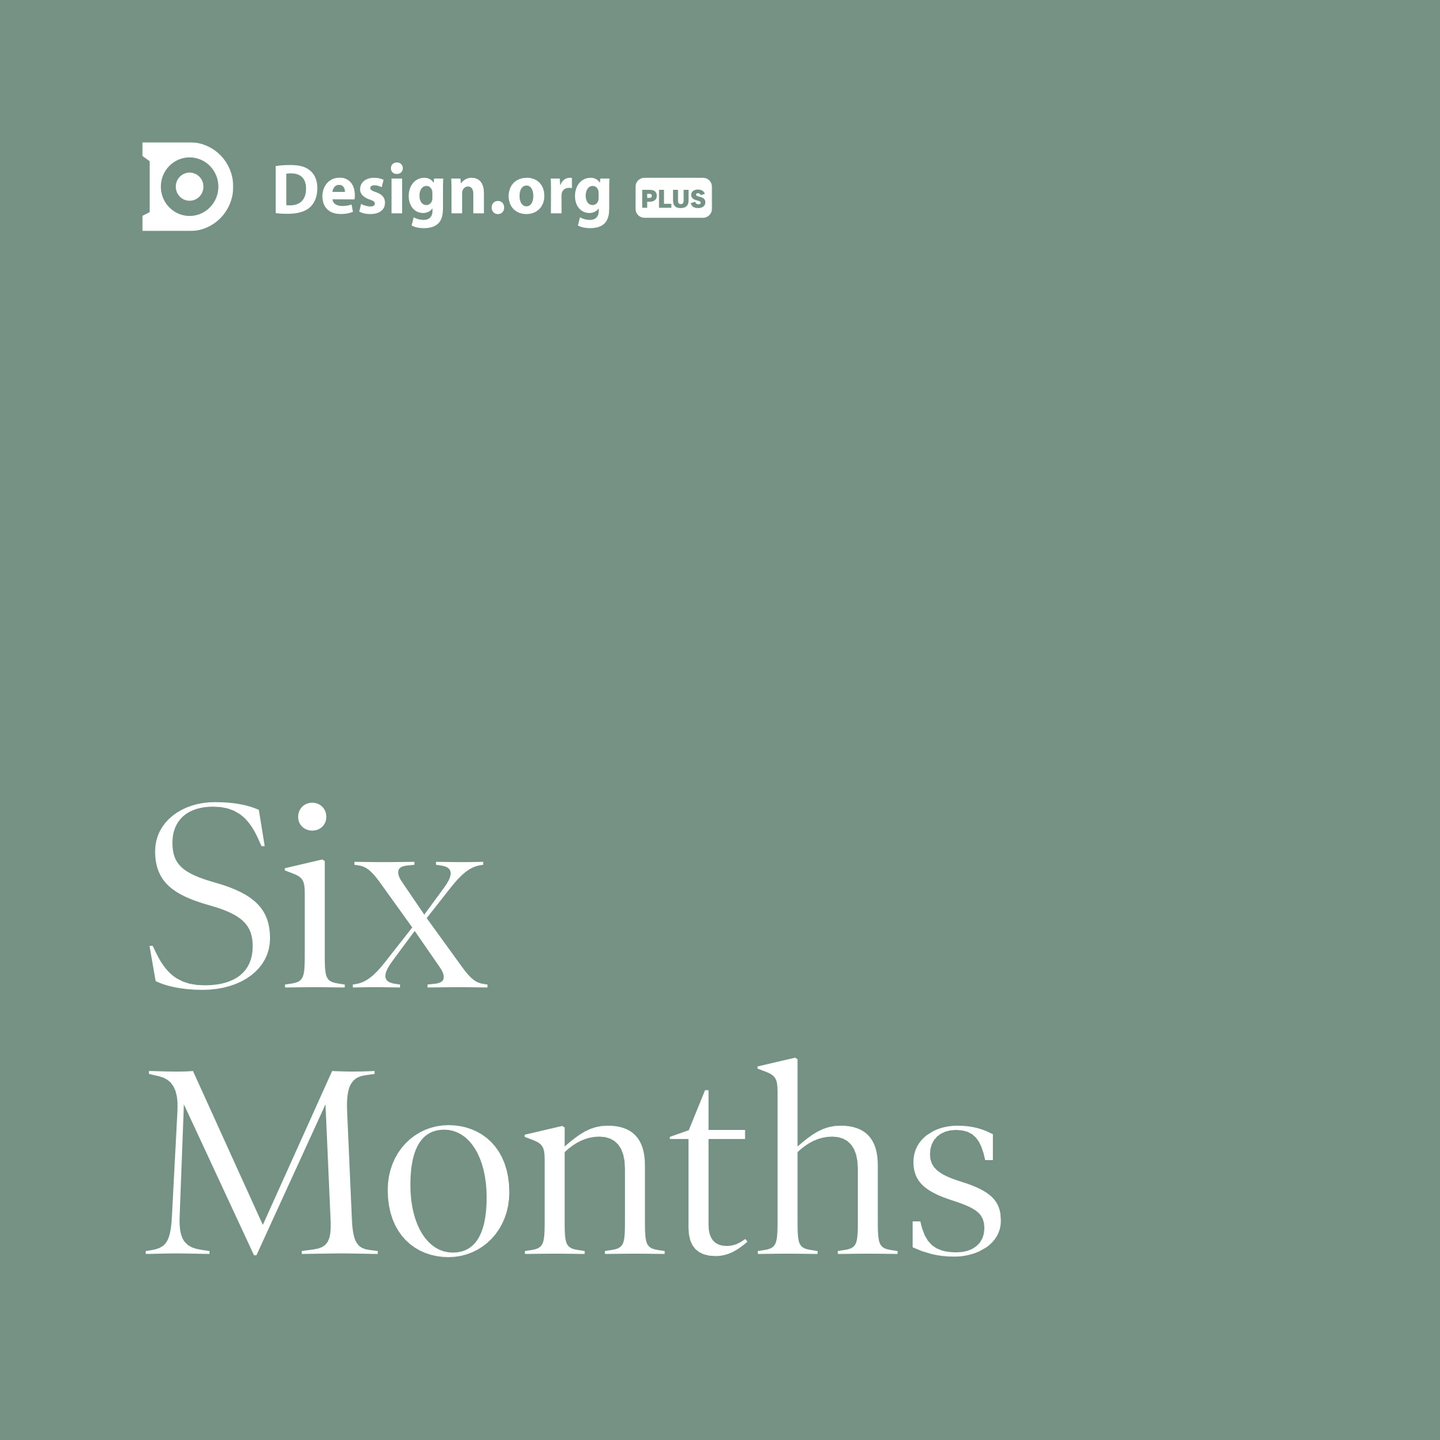 Design.org Plus 6-month Subscription